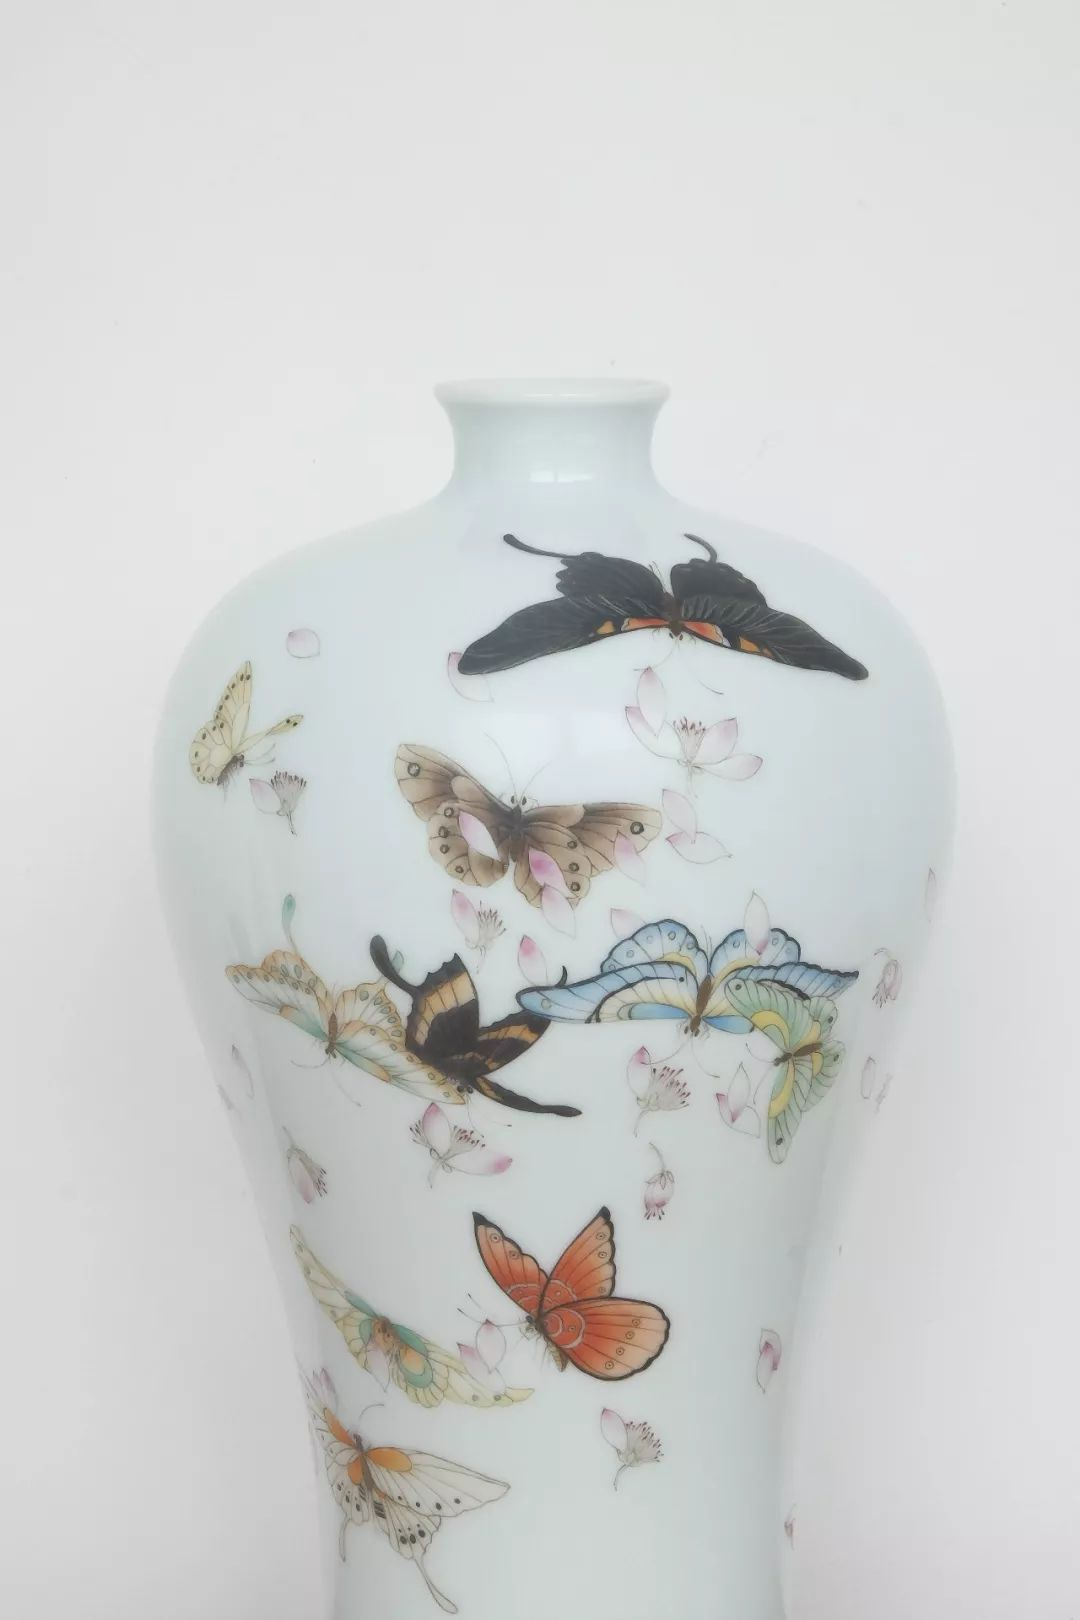 Flower and butterfly ceramic vases